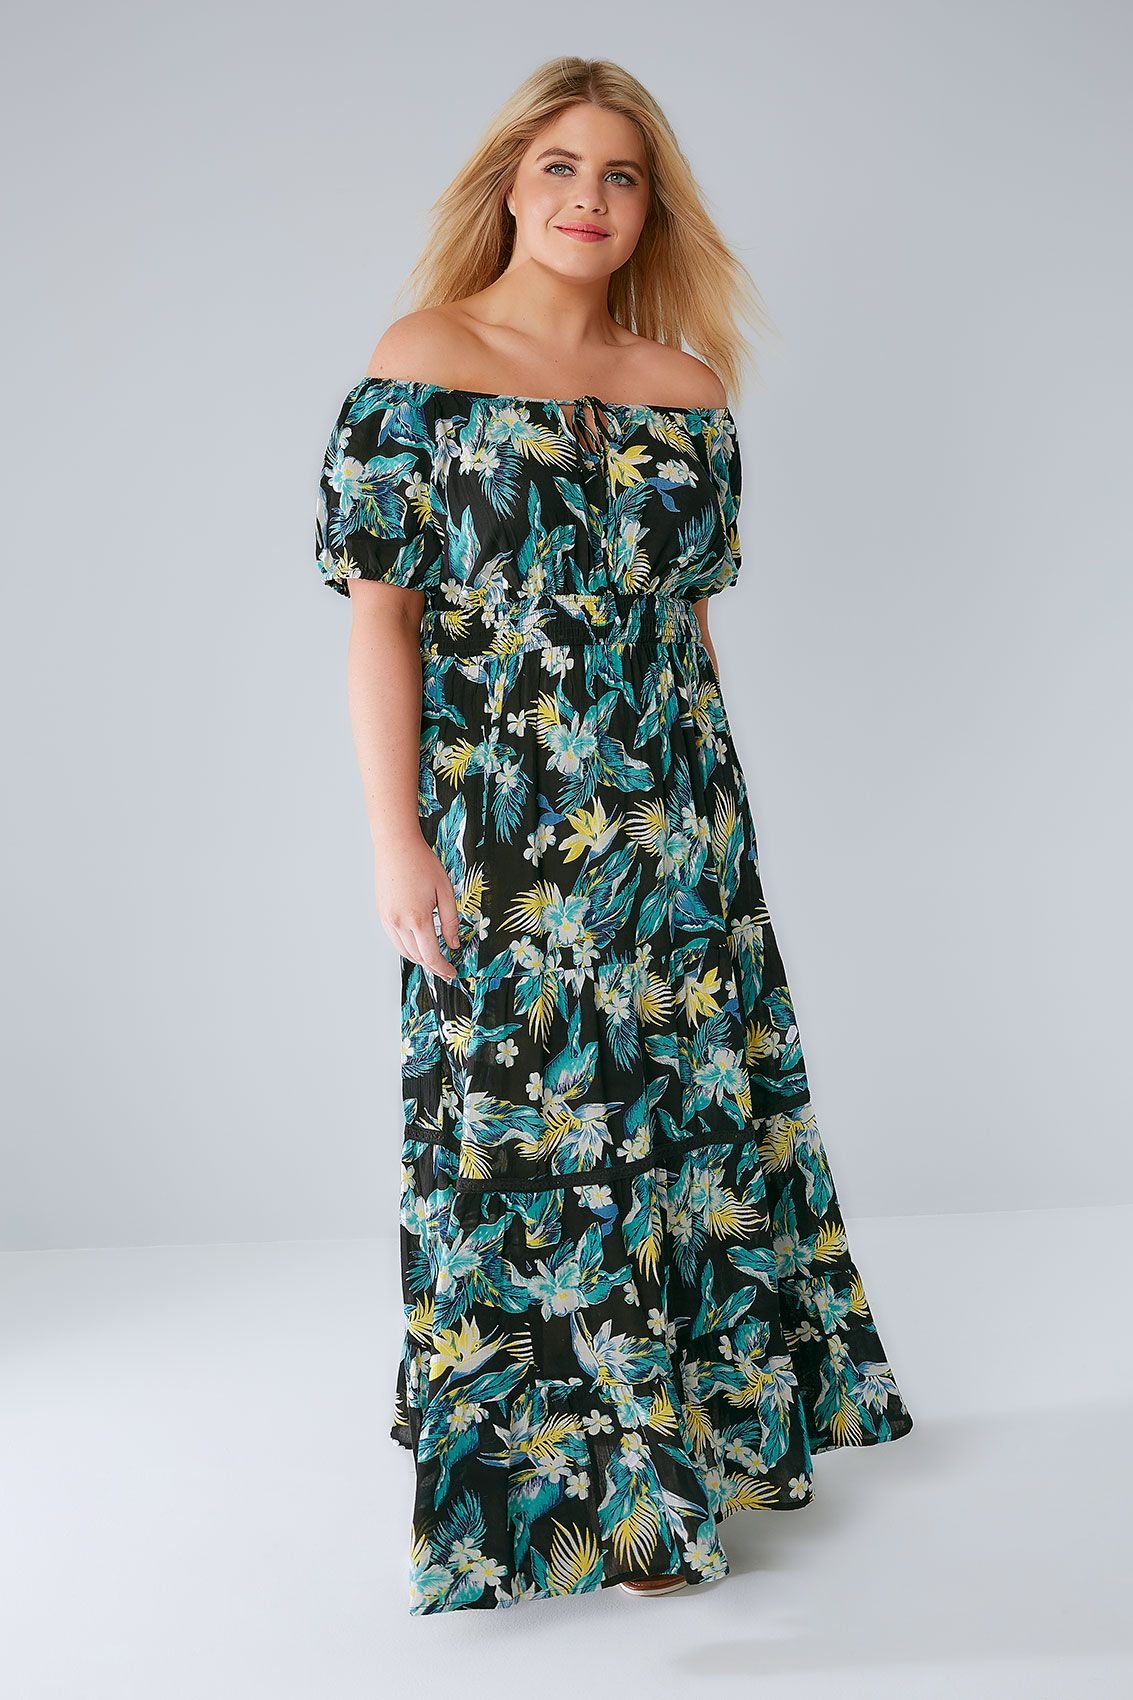 Tropical one shoulder dress plus size